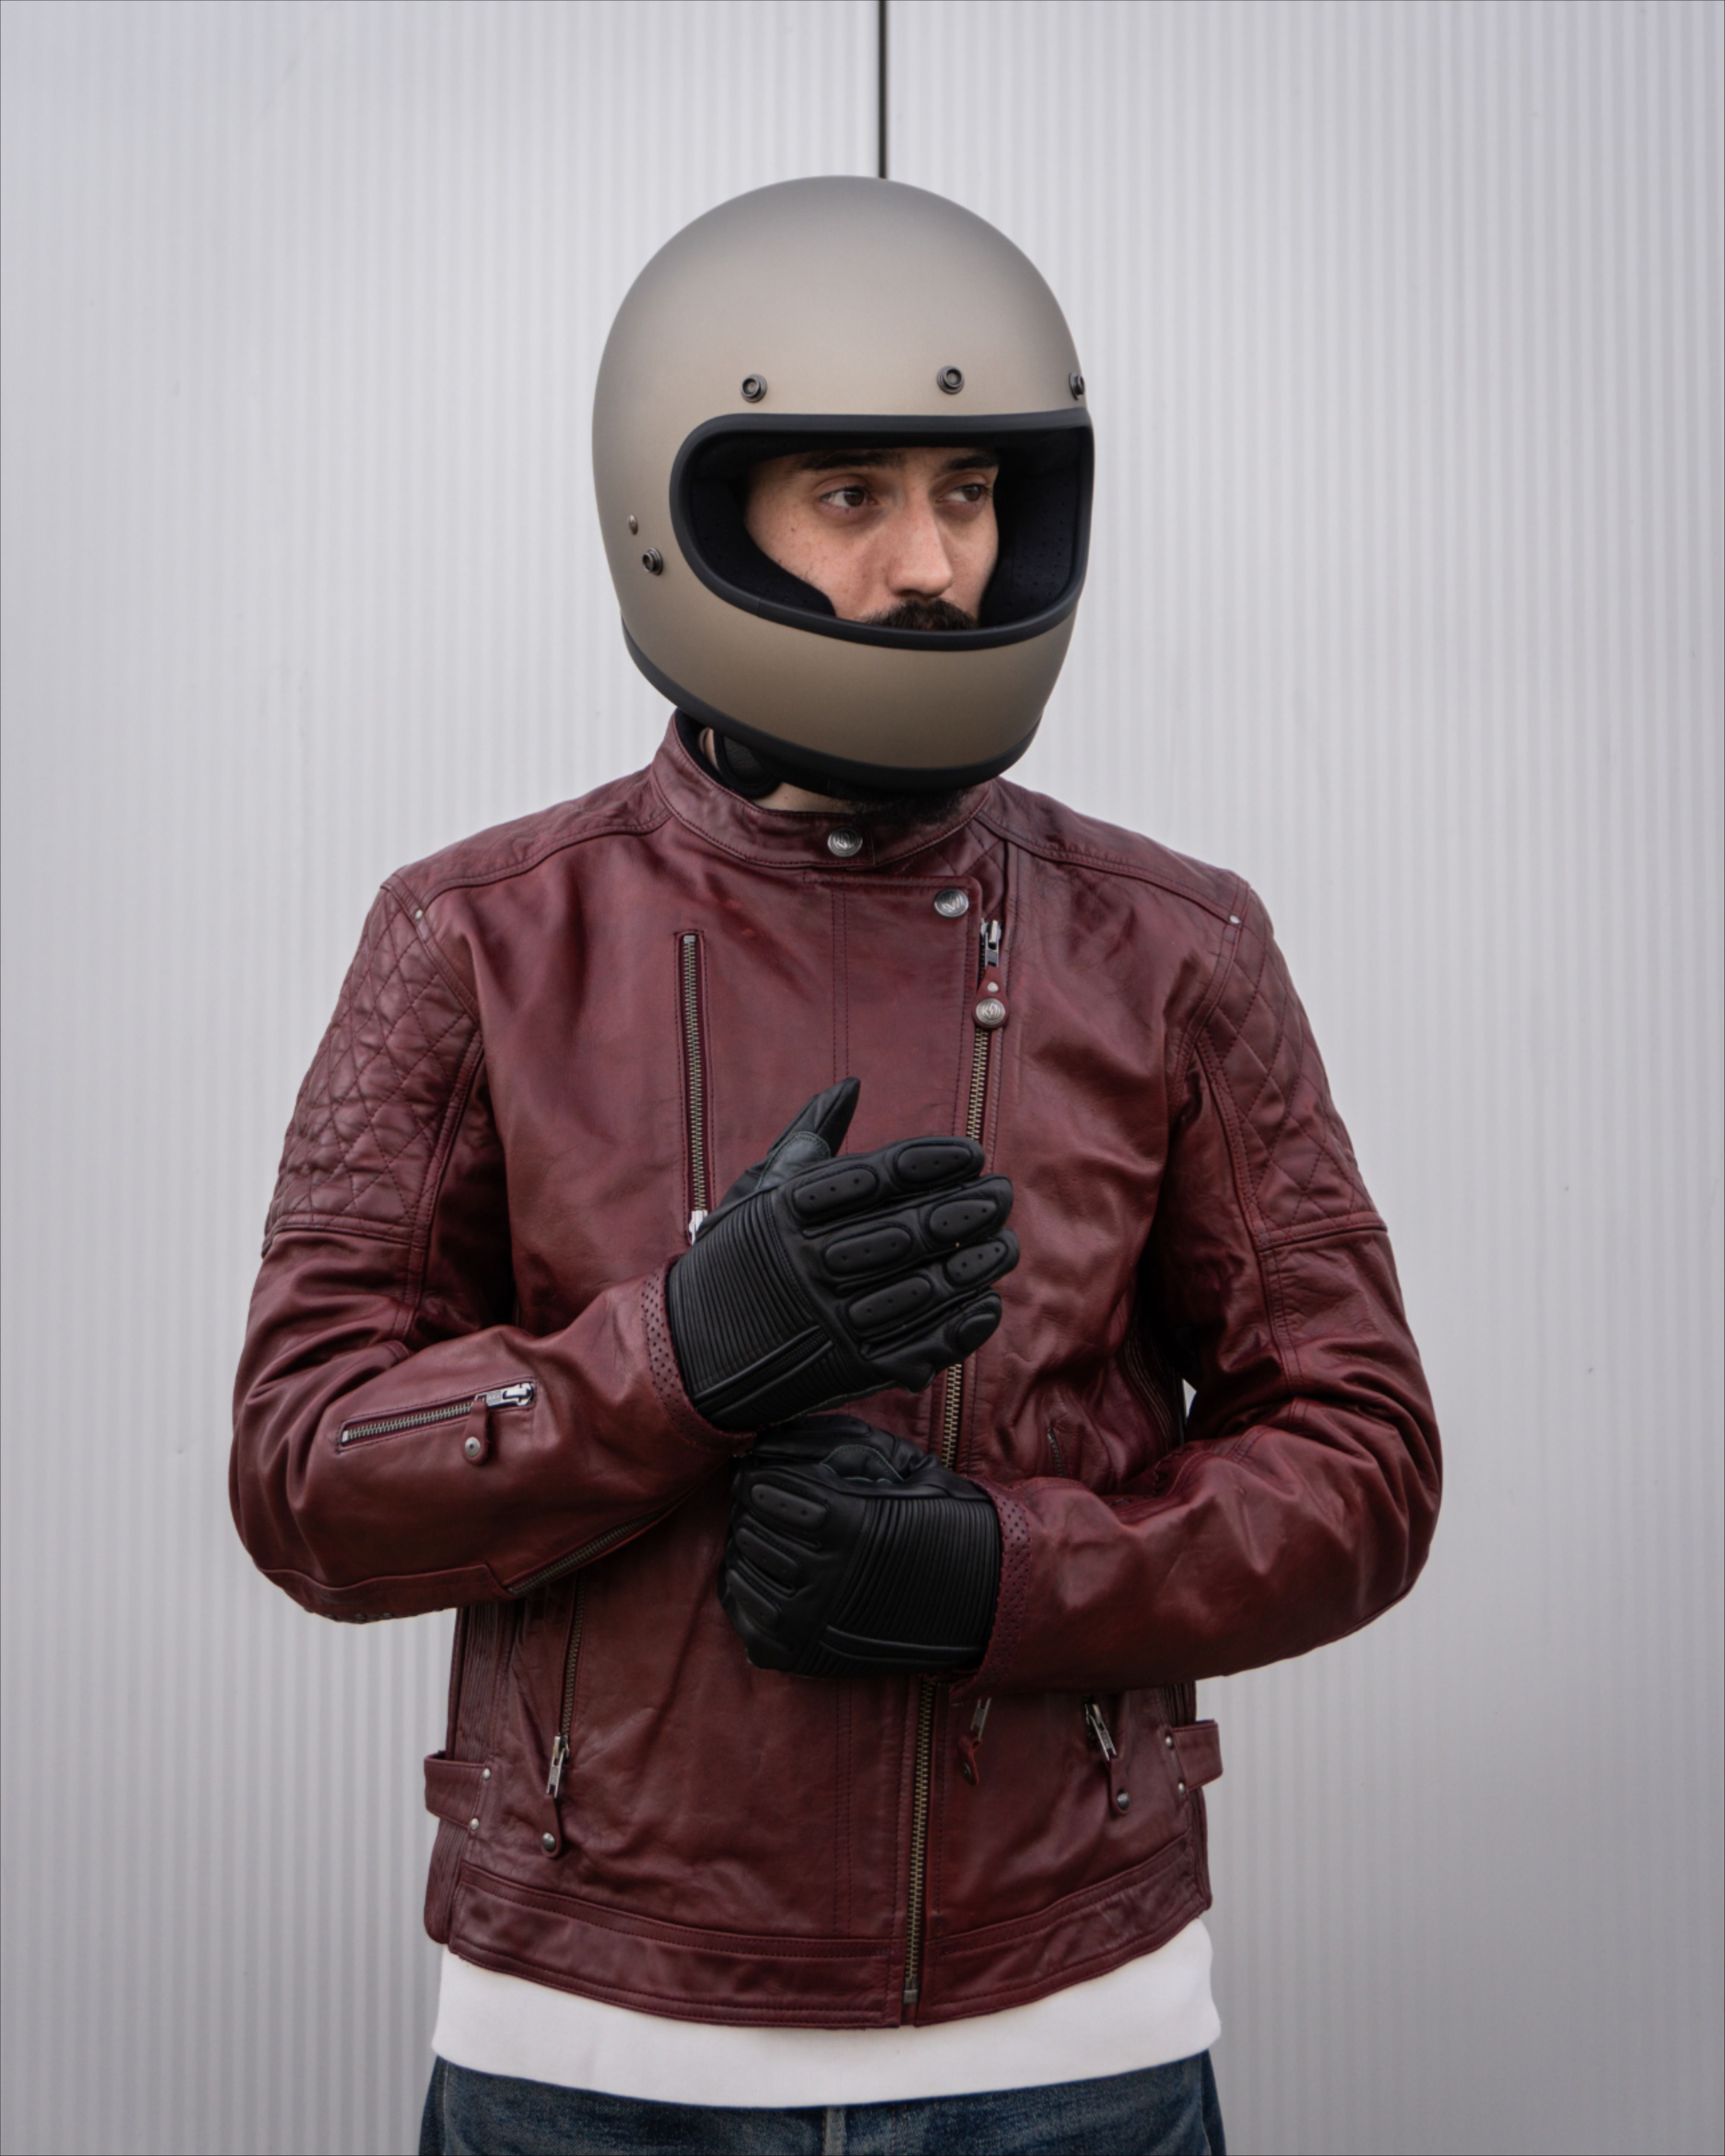 A classic motorcycle jacket from Roland Sands Design. One